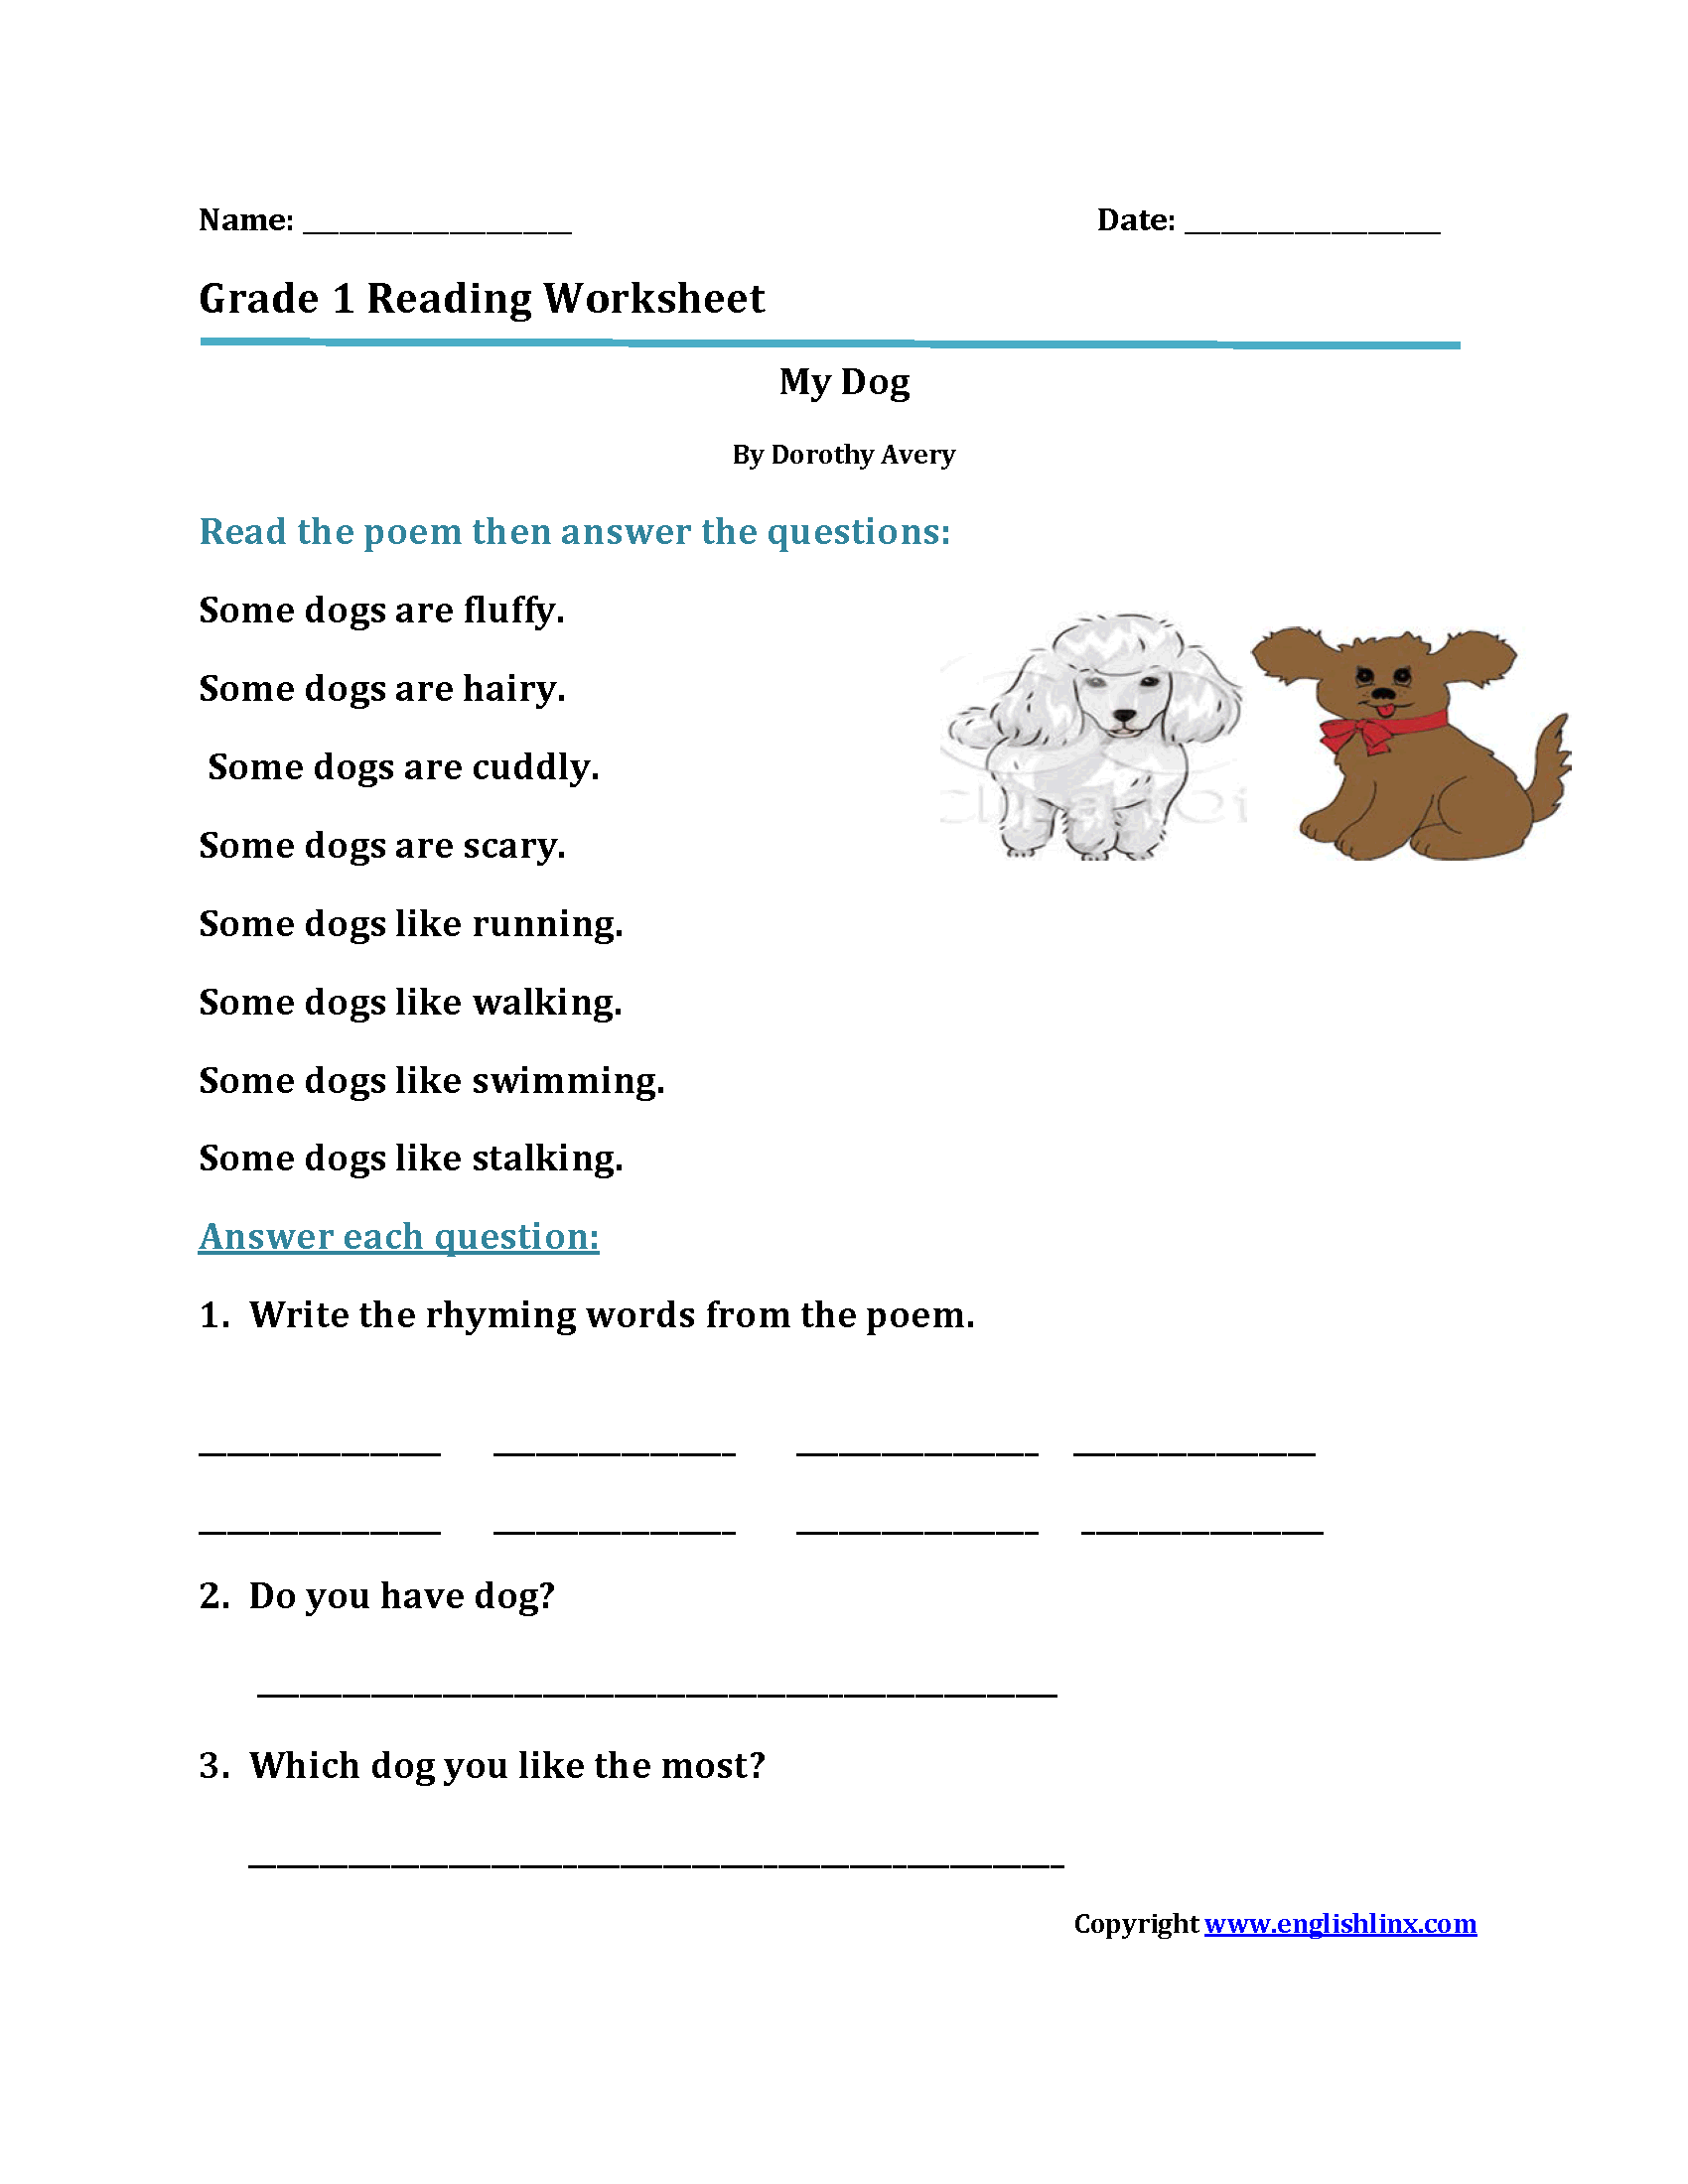 Worksheets Worksheets 1st Grade reading worksheets first grade my dogfirst worksheets